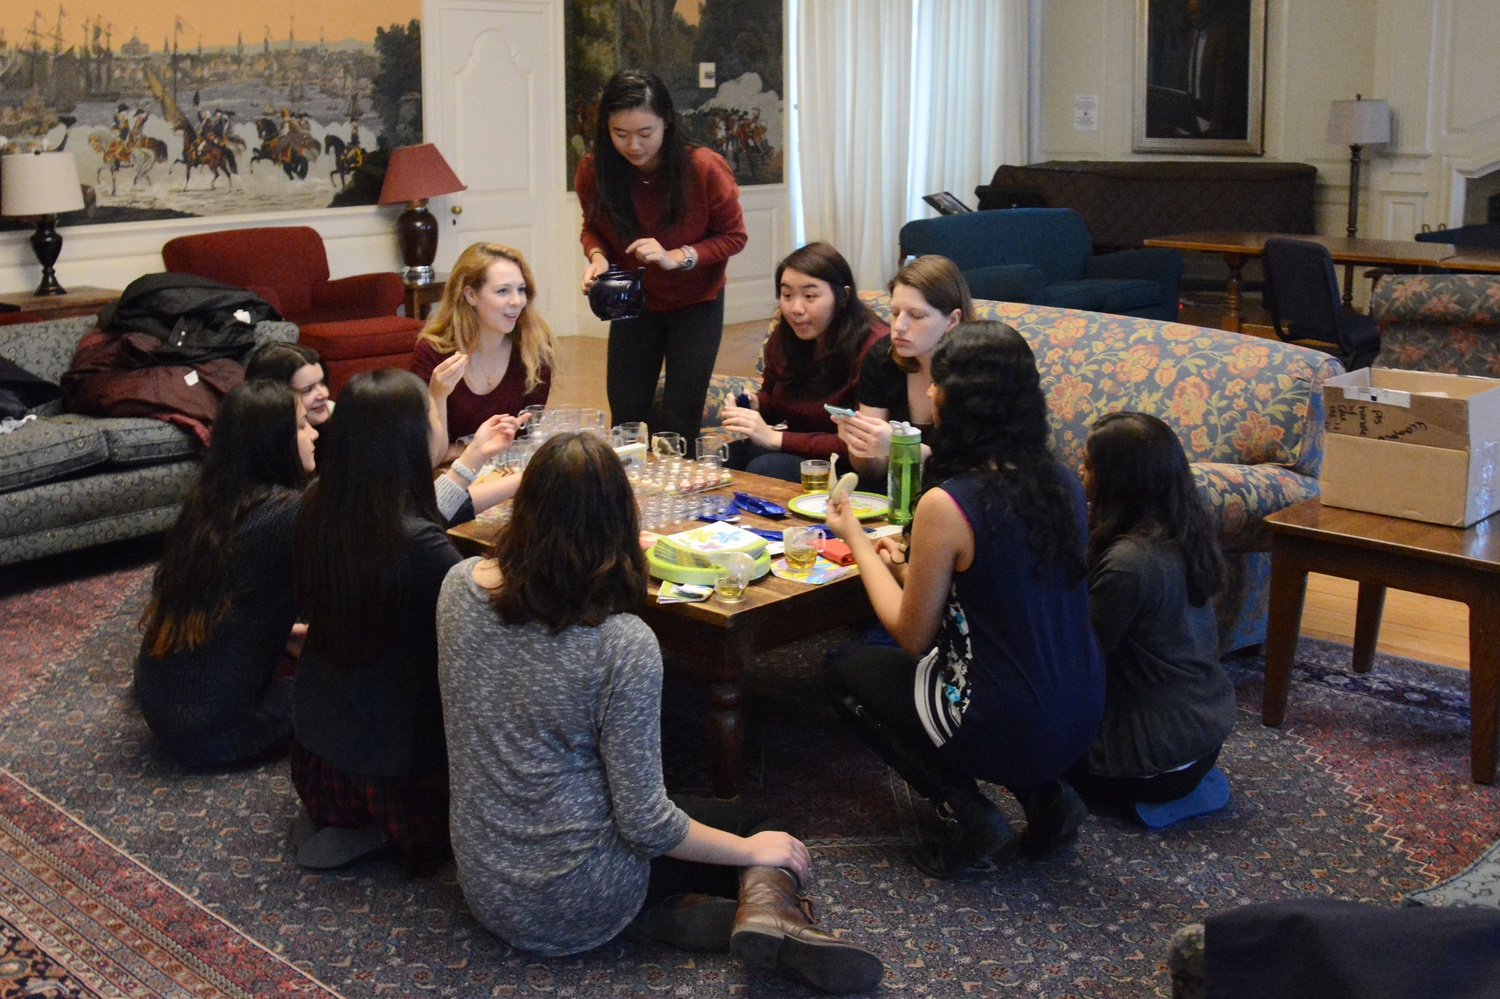 Women in Computer Science members discuss life with a career in computer science at a Mentorship Tea Party in Lowell JCR on Wednesday. WiCS hosts a series of events throughout the semester for fostering a community of technically-skilled women.